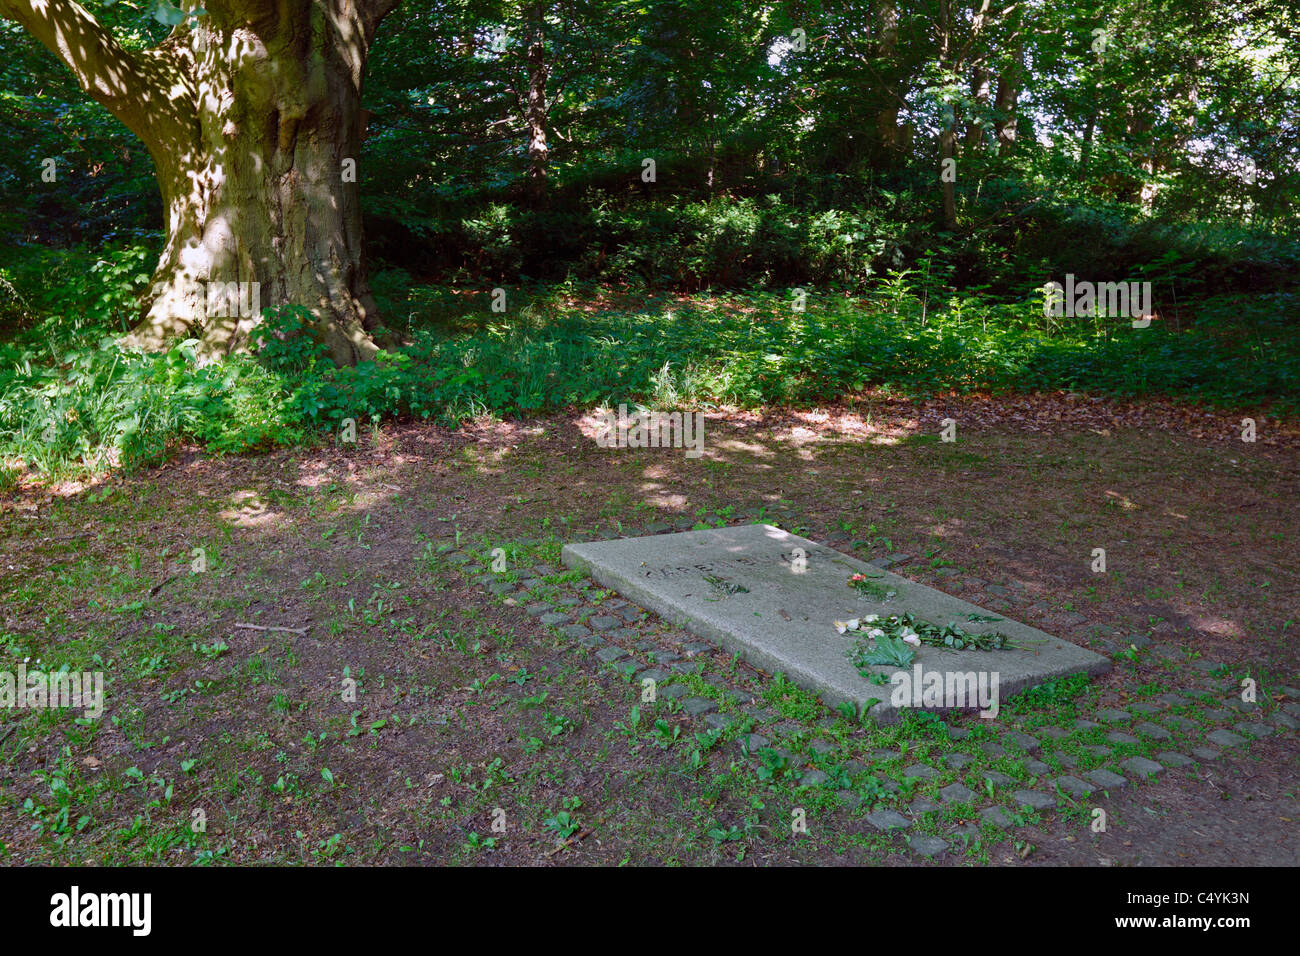 The grave of Karen Blixen in the woods of Rungstedlund in Rungsted, Denmark - Stock Image